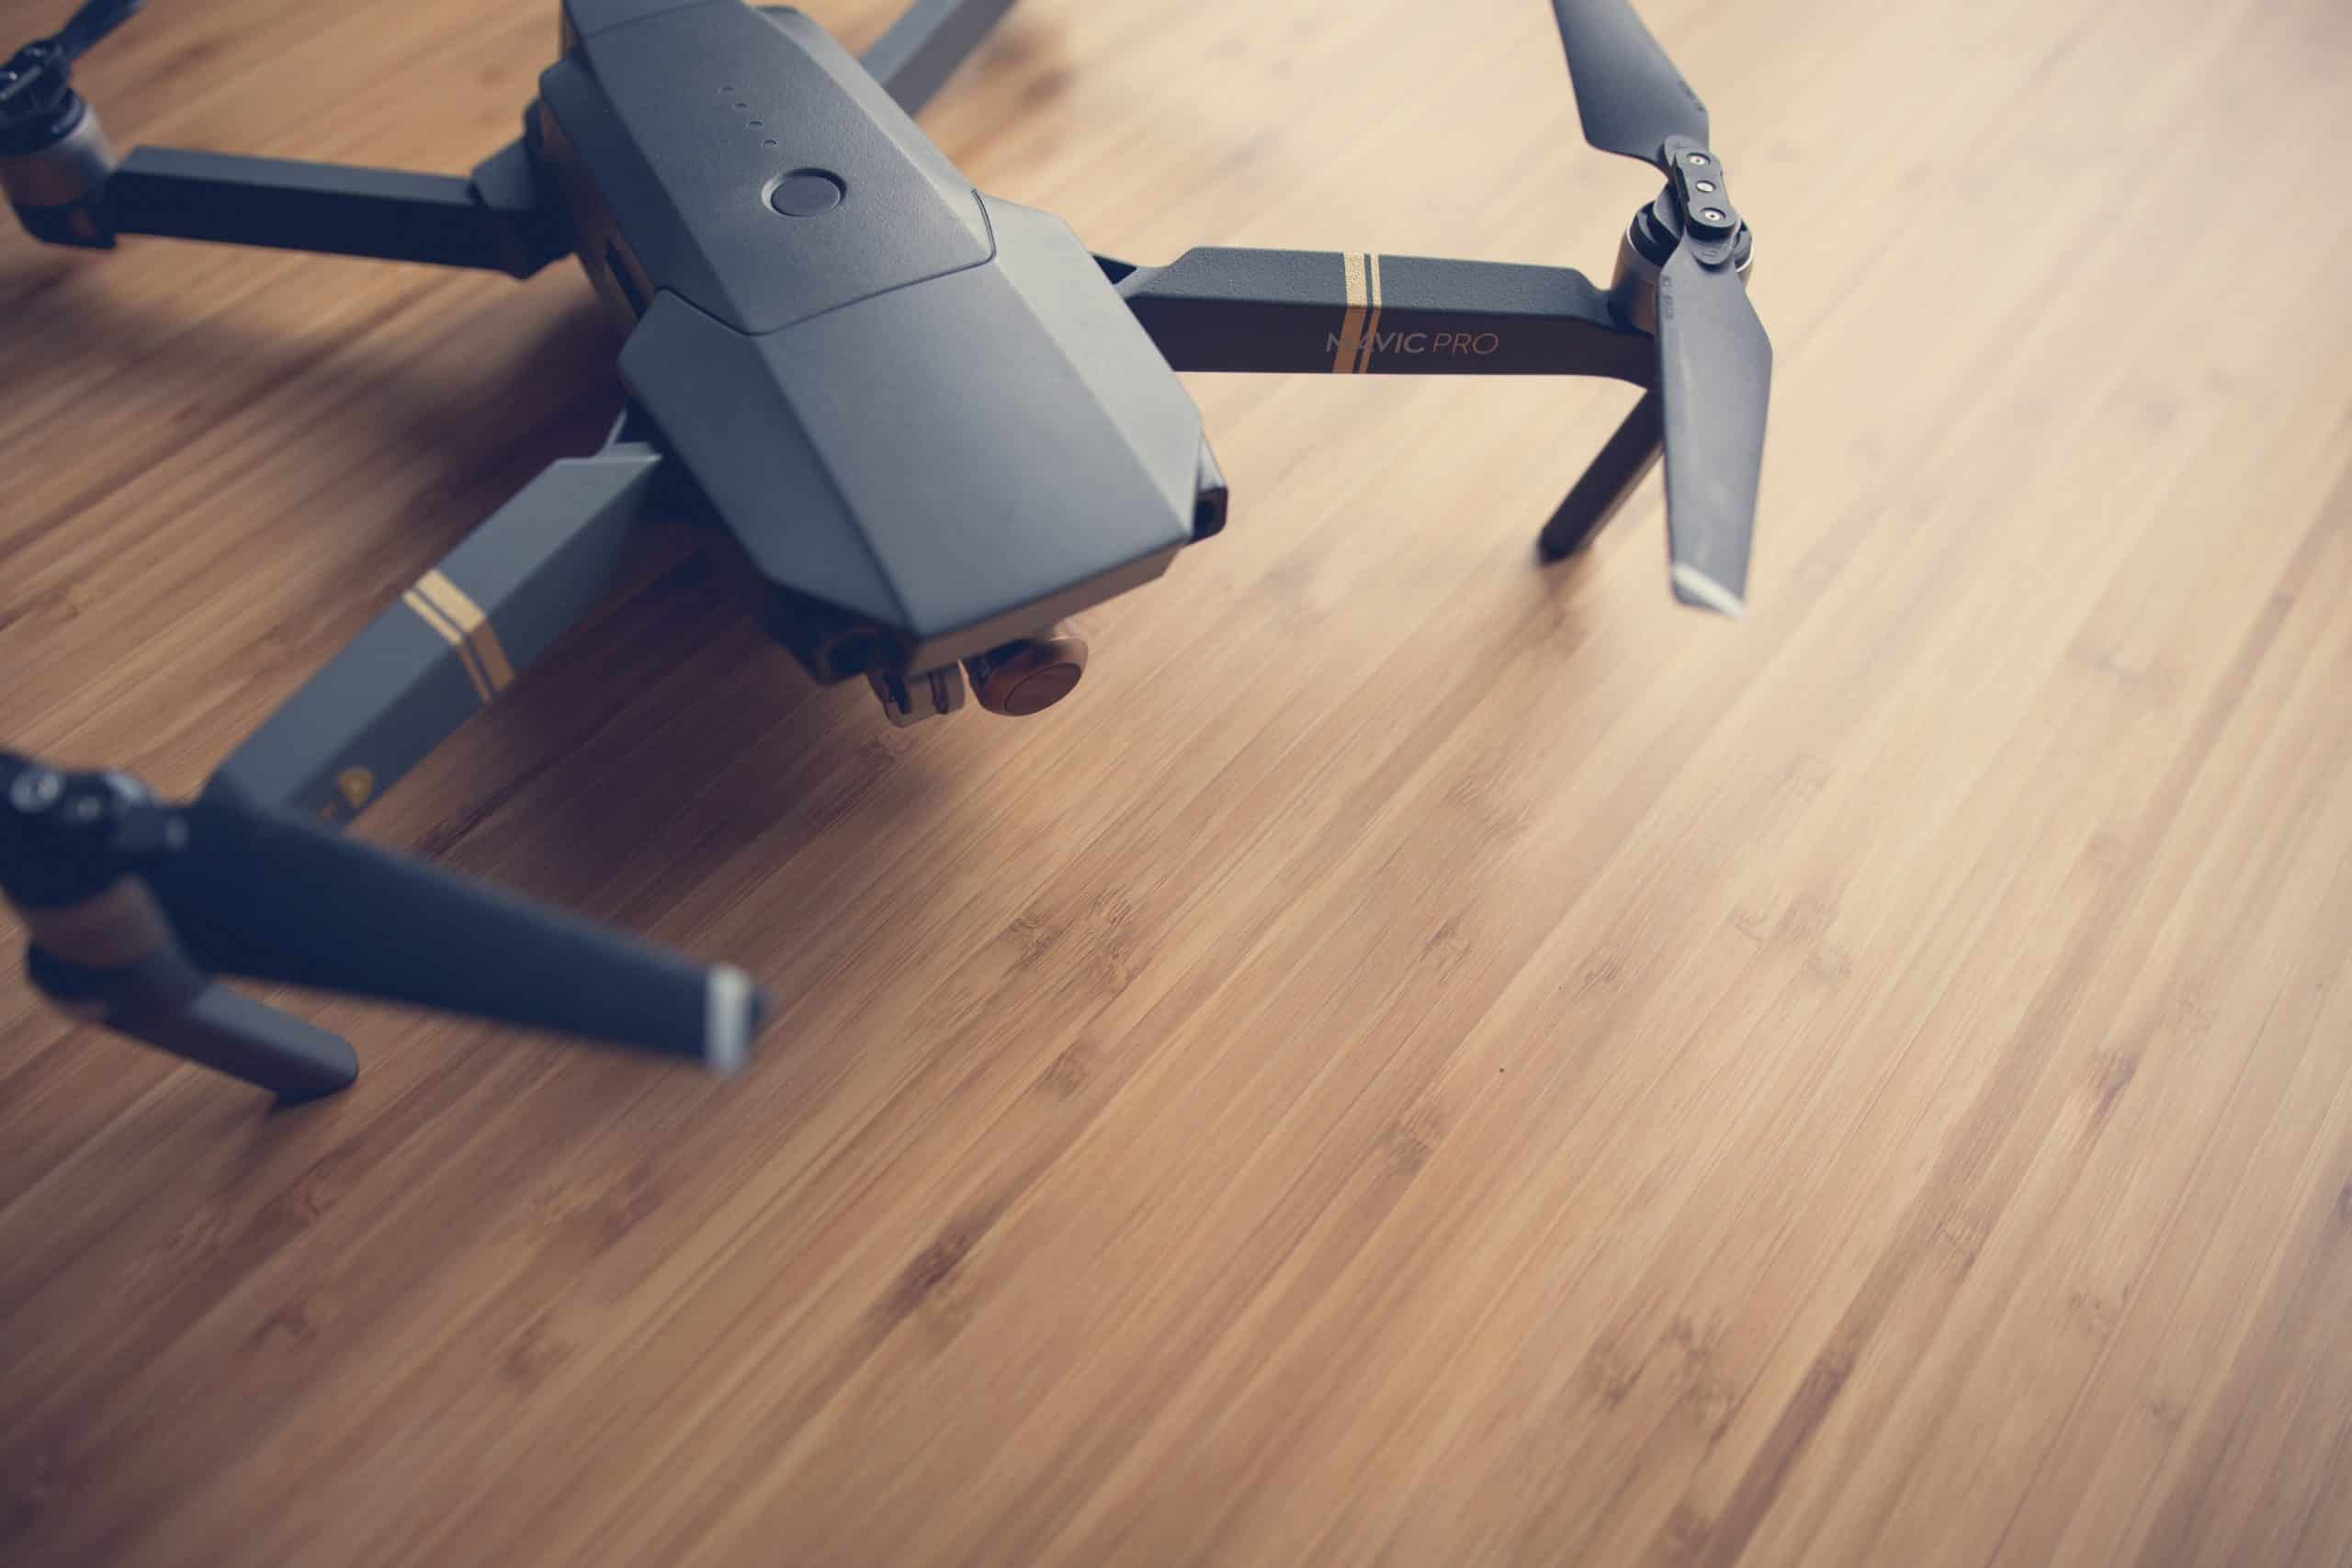 Drones For Sale: Cheap Drones You Must Buy